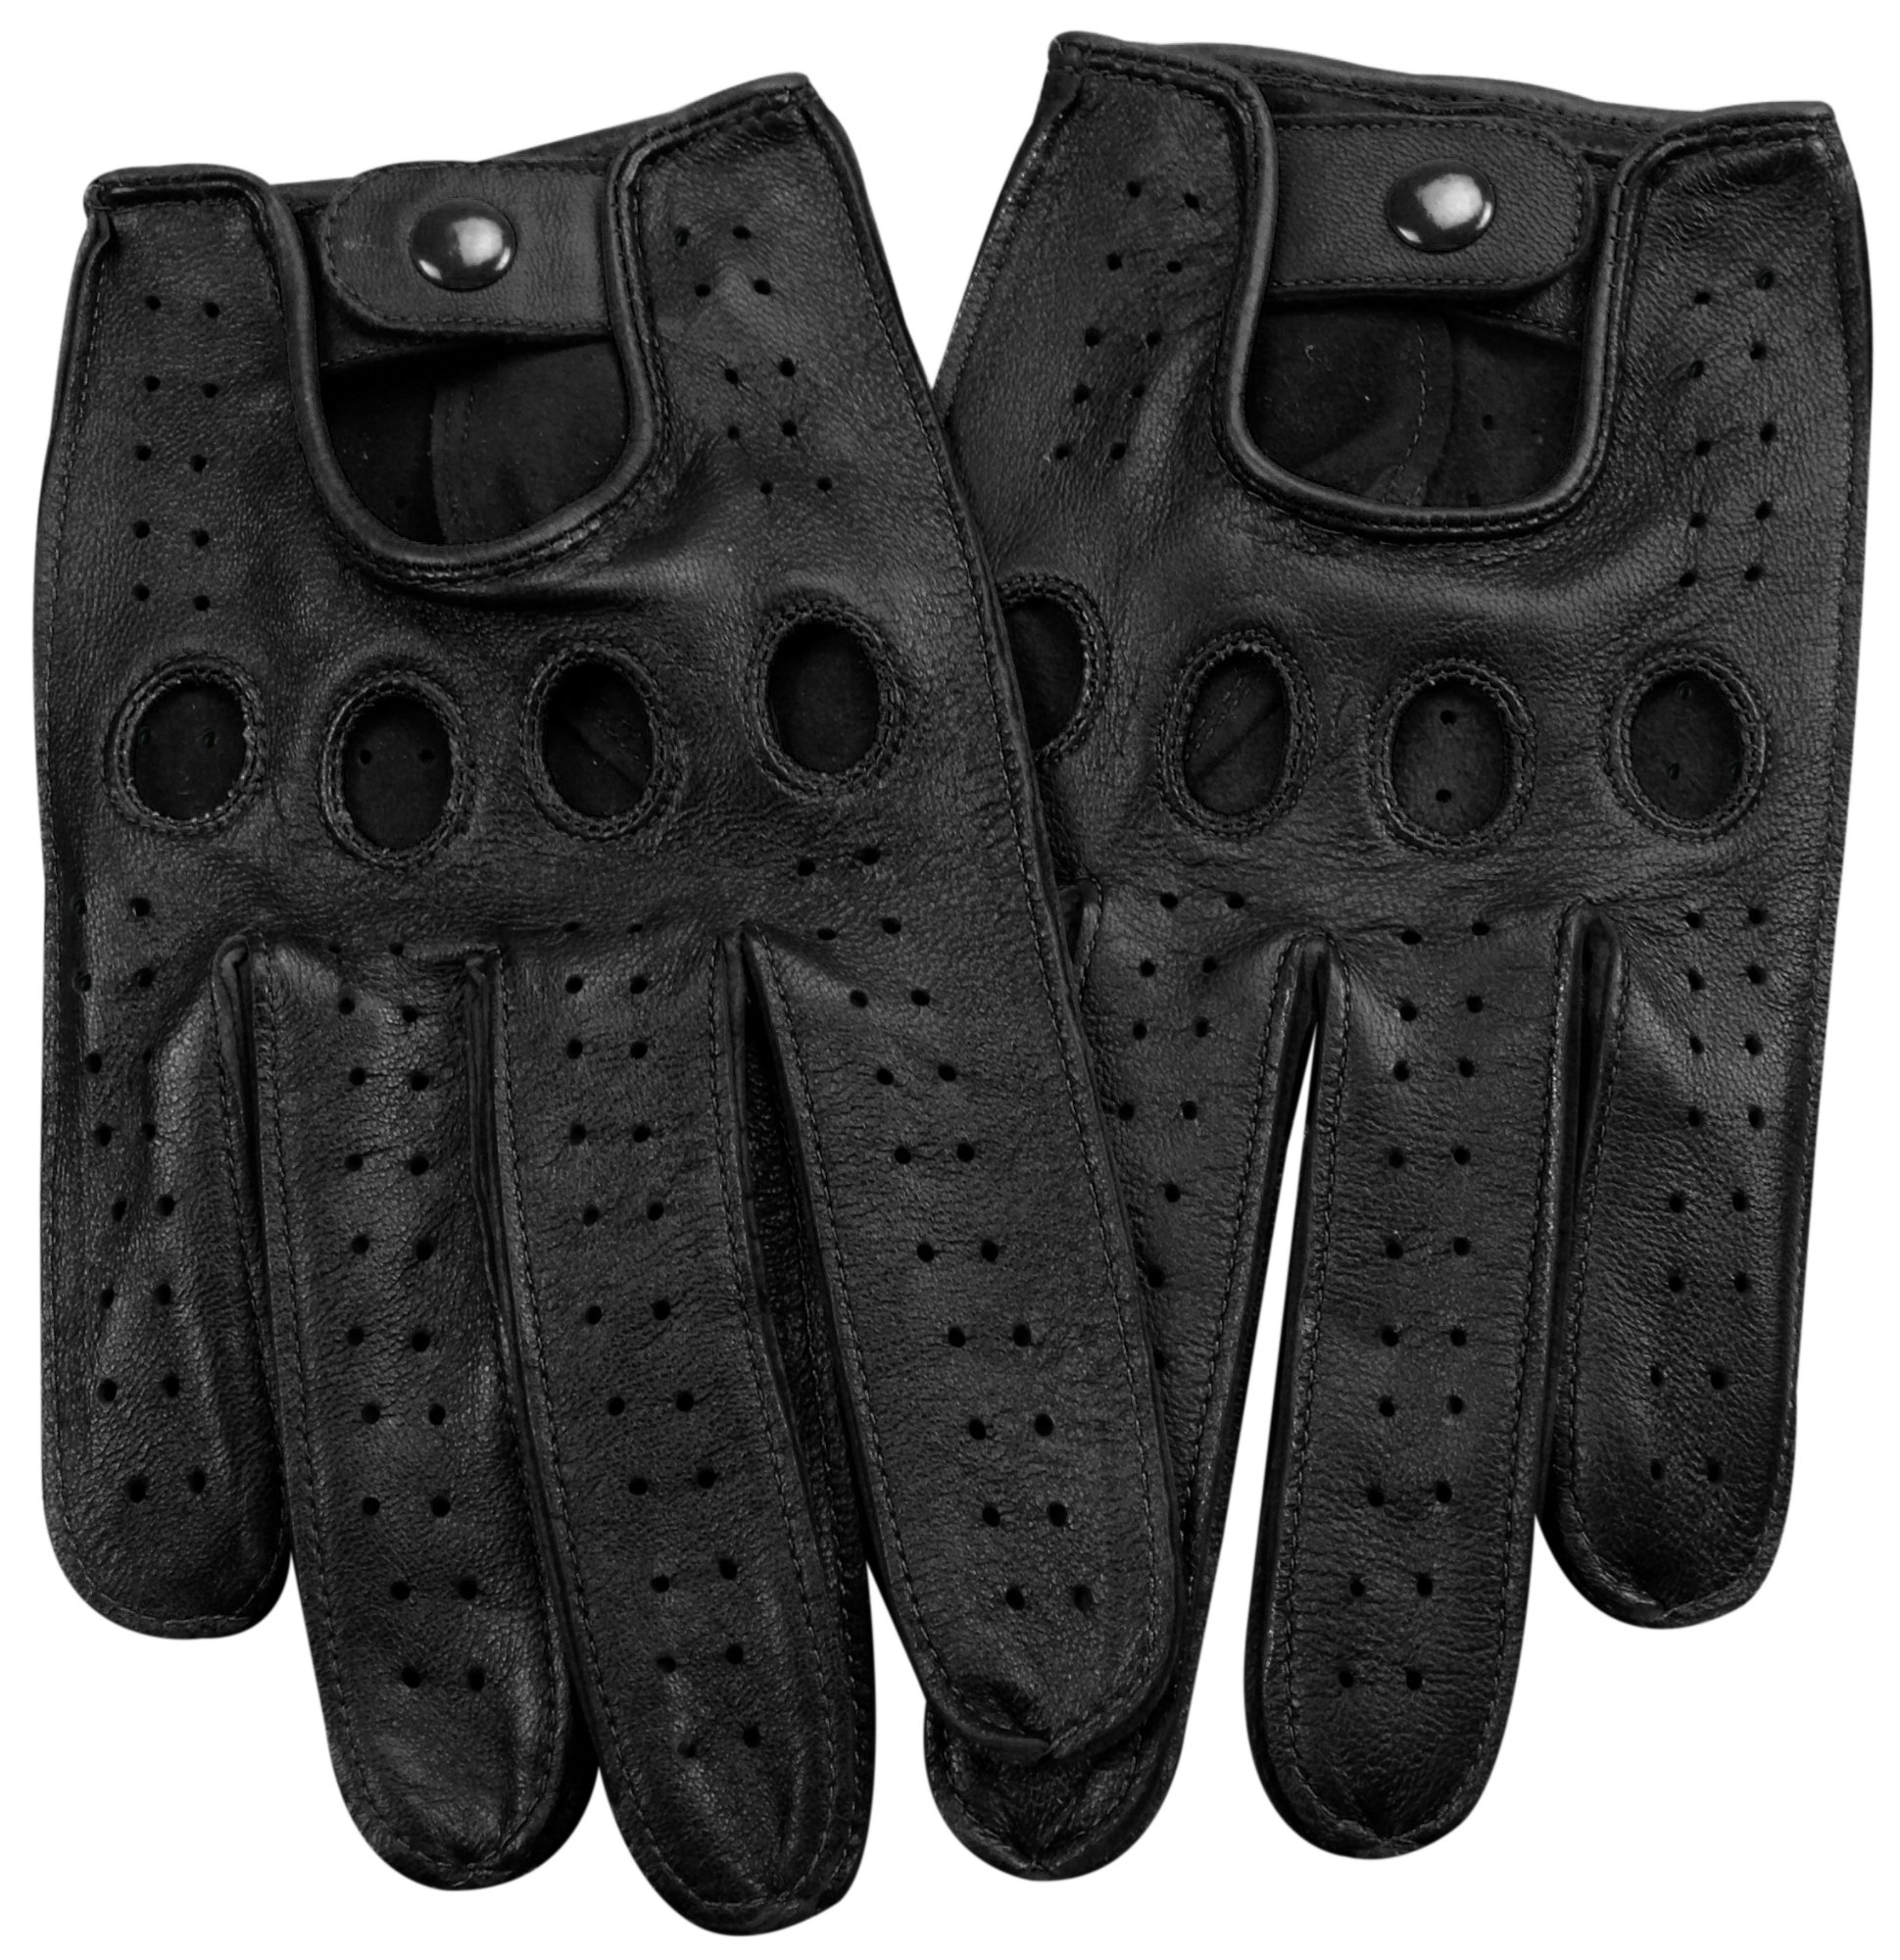 Genuine Nappa leather Driving Gloves Touchscreen Full finger Cycling Gym L BK